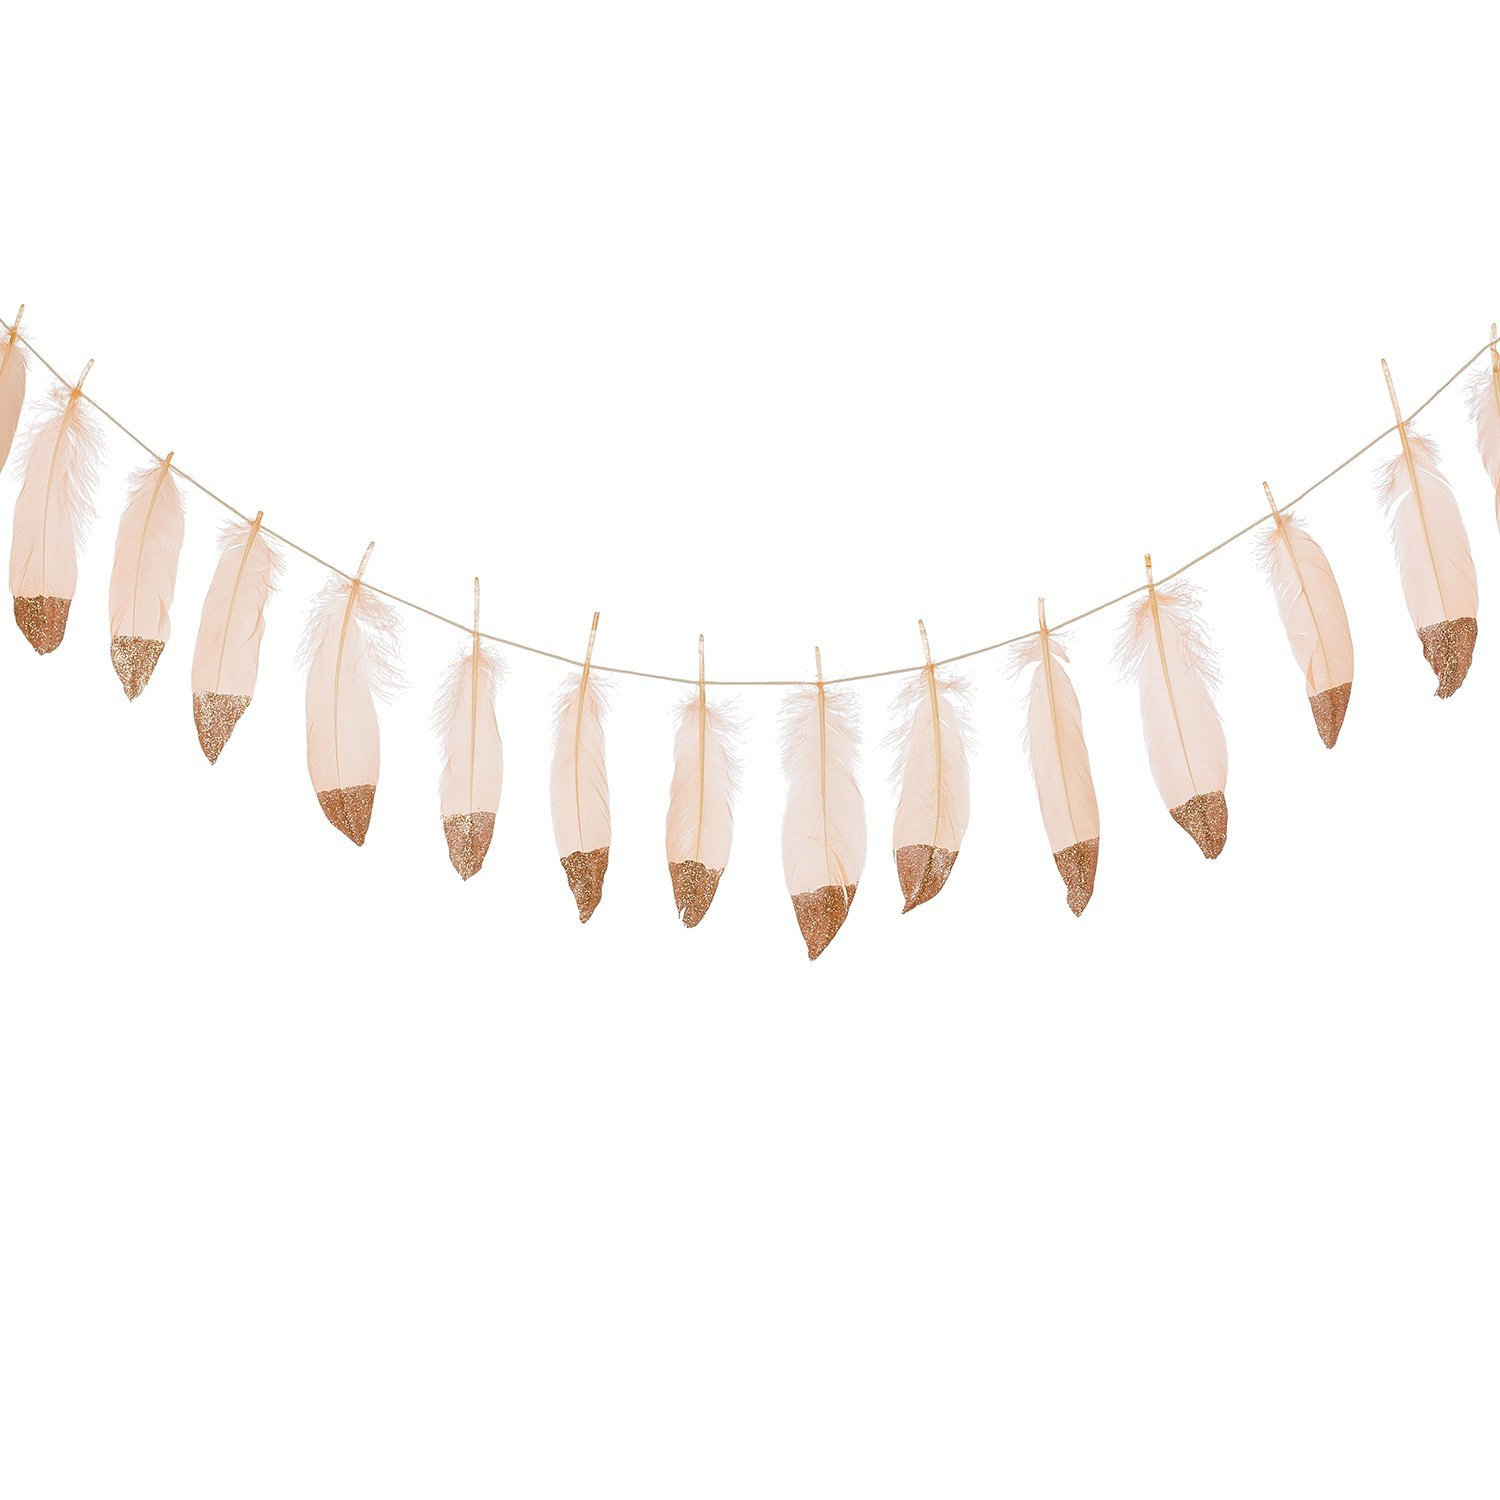 Banners For Bedrooms: Feather Garland Rose Gold Glitter Dipped Soft Feather